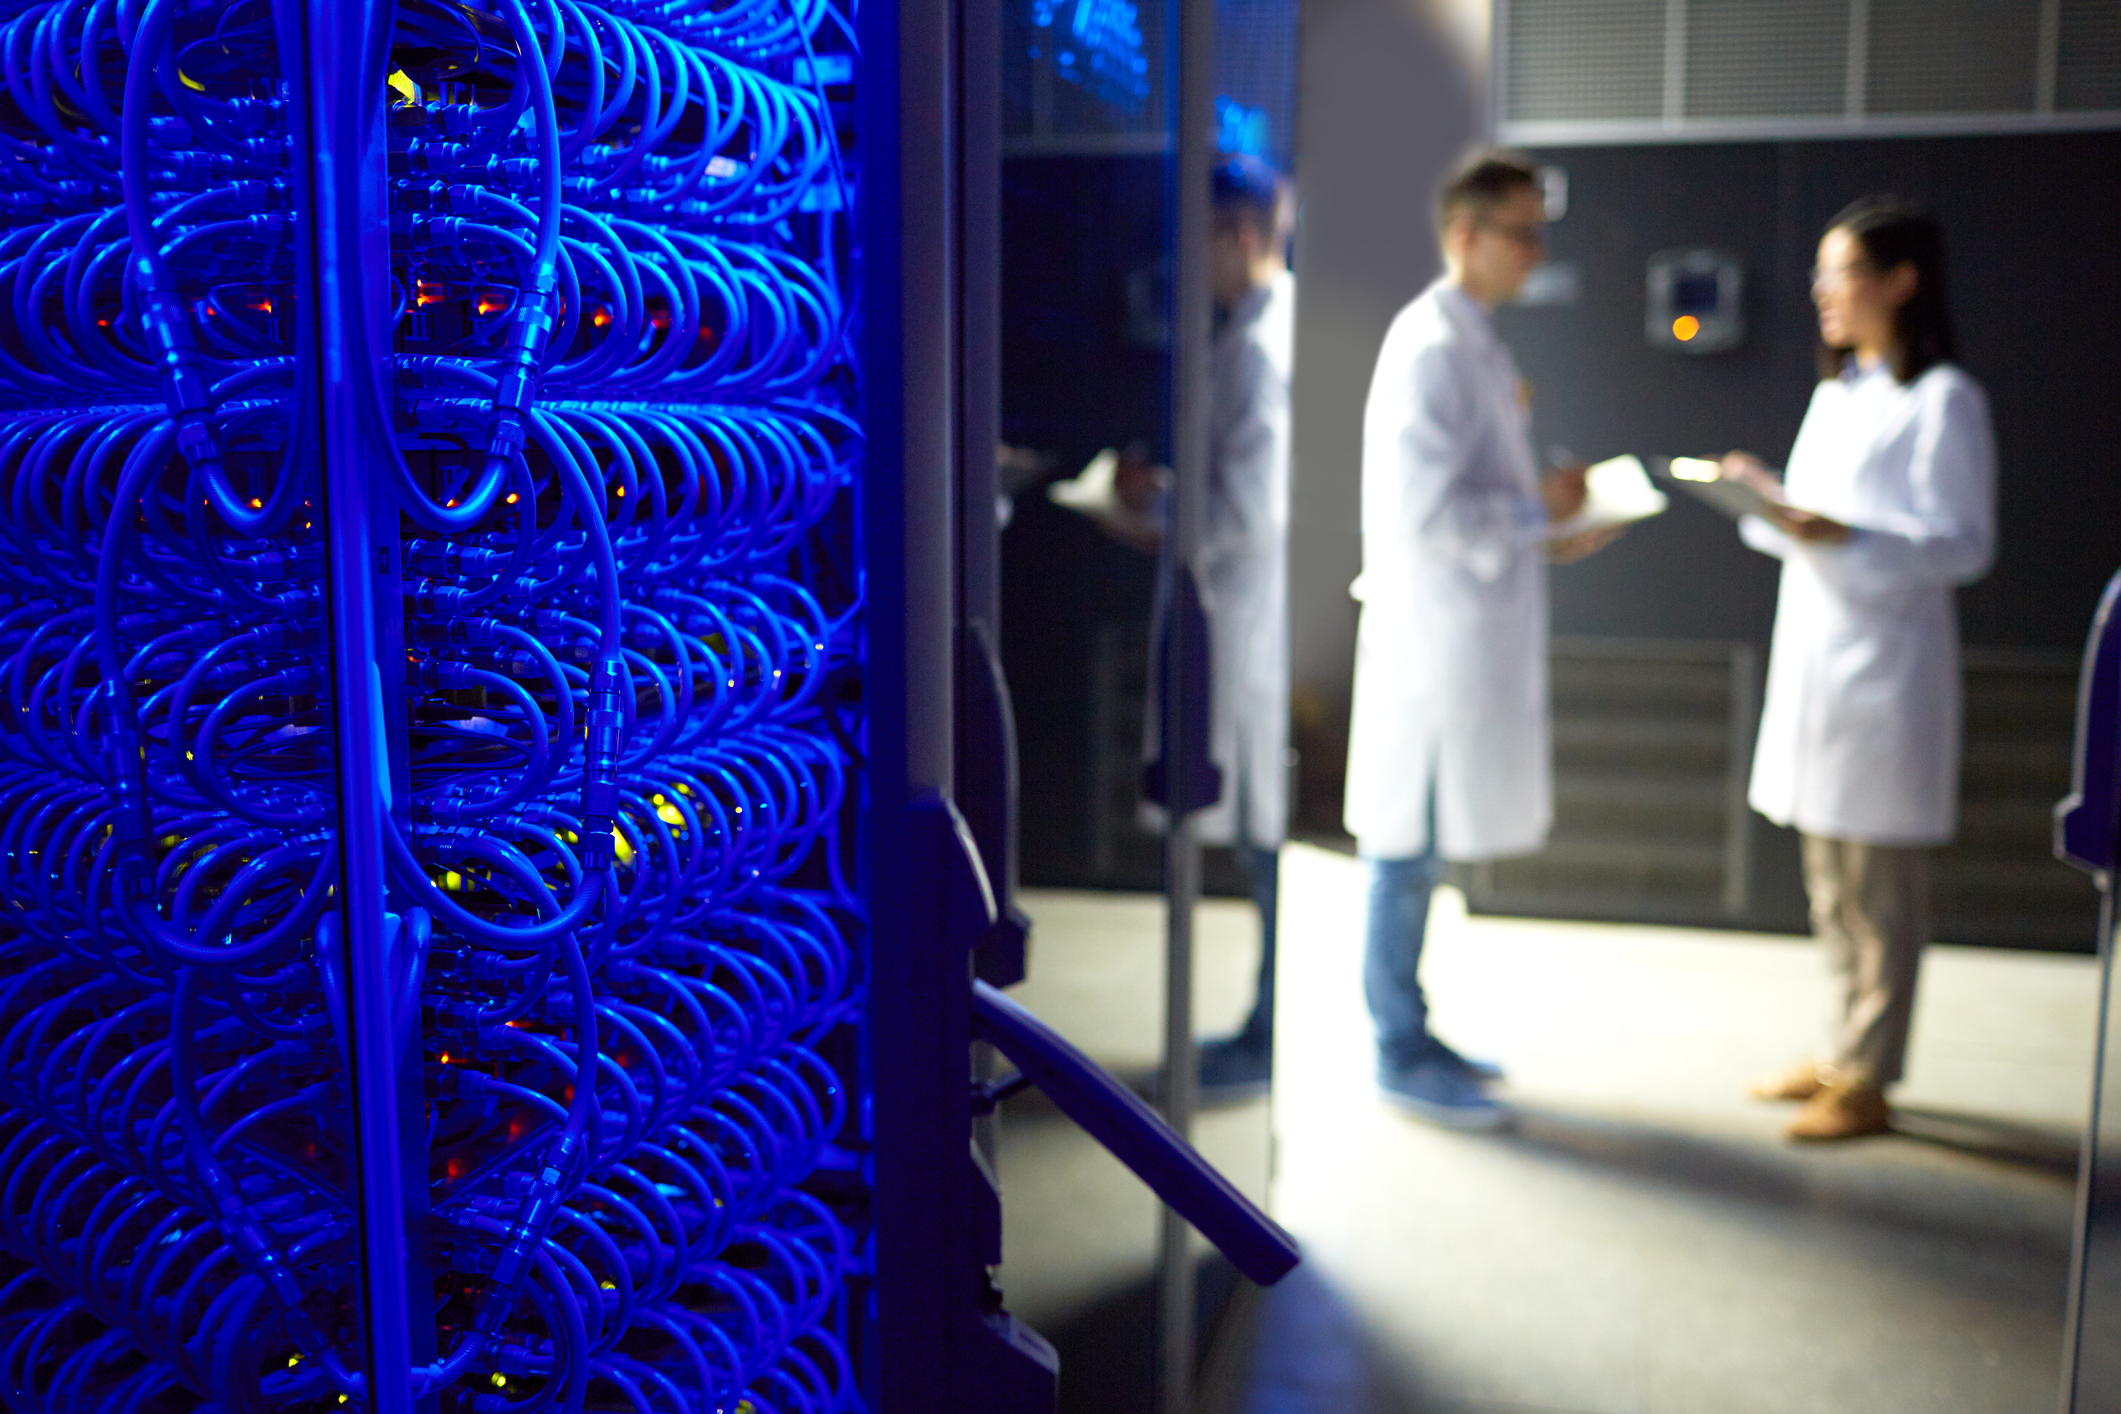 Two technicians stand near a supercomputer